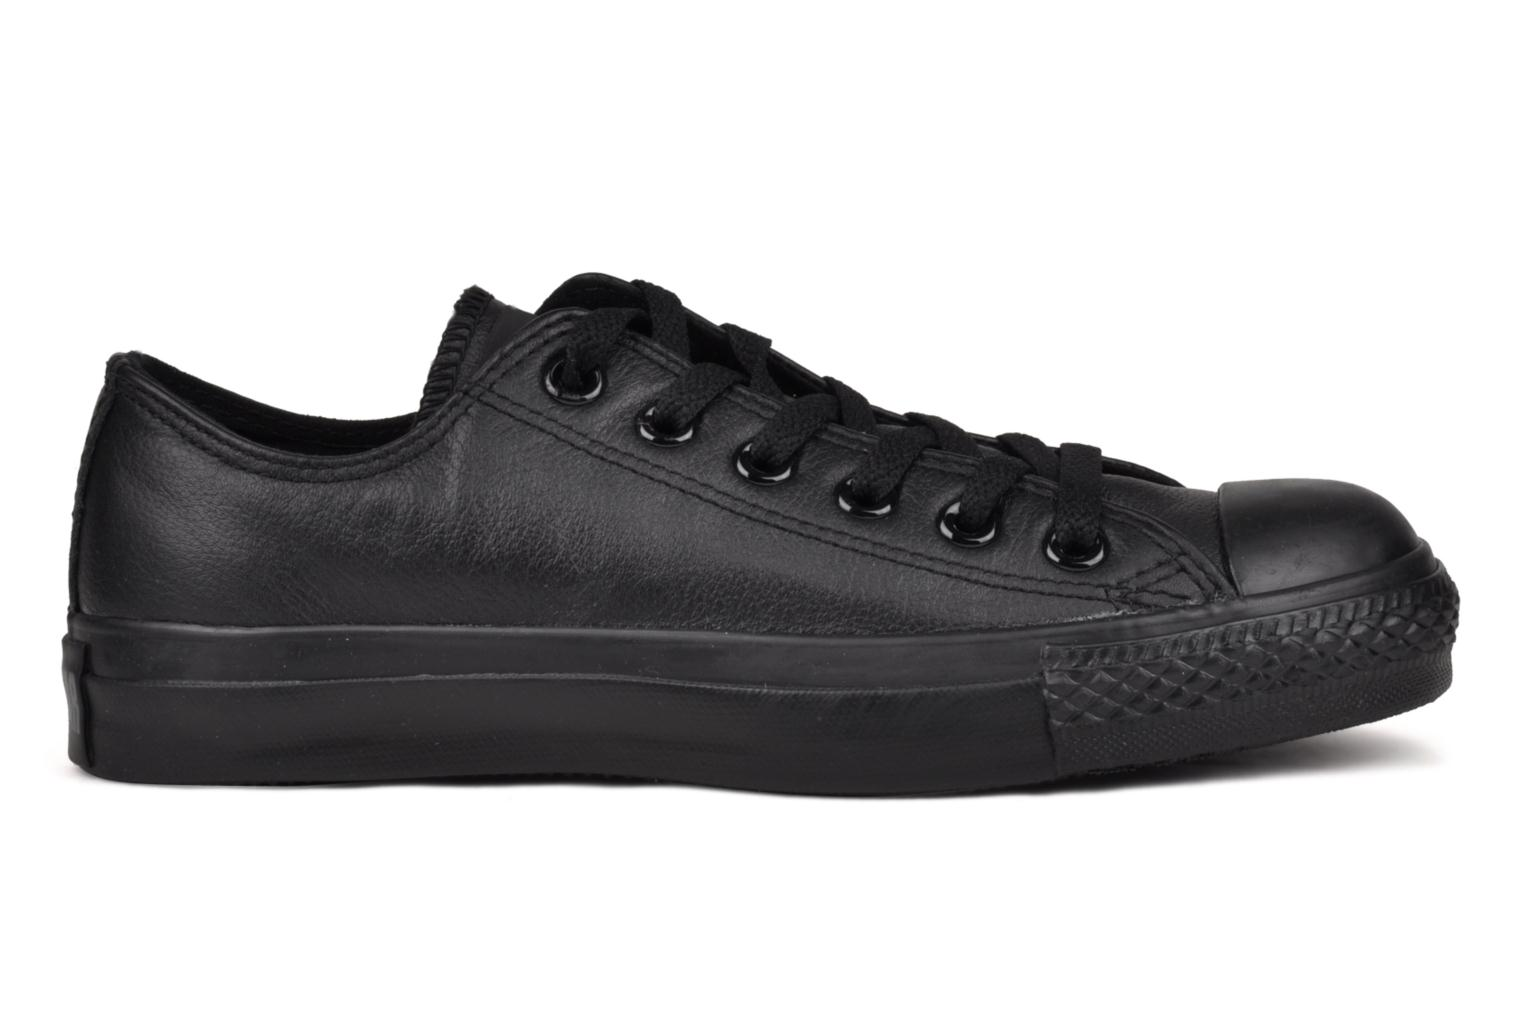 e7803fe0781 ... All Taylor Noir Star W Chuck Converse Leather Monochrome Ox 1BECFnqwx  ...